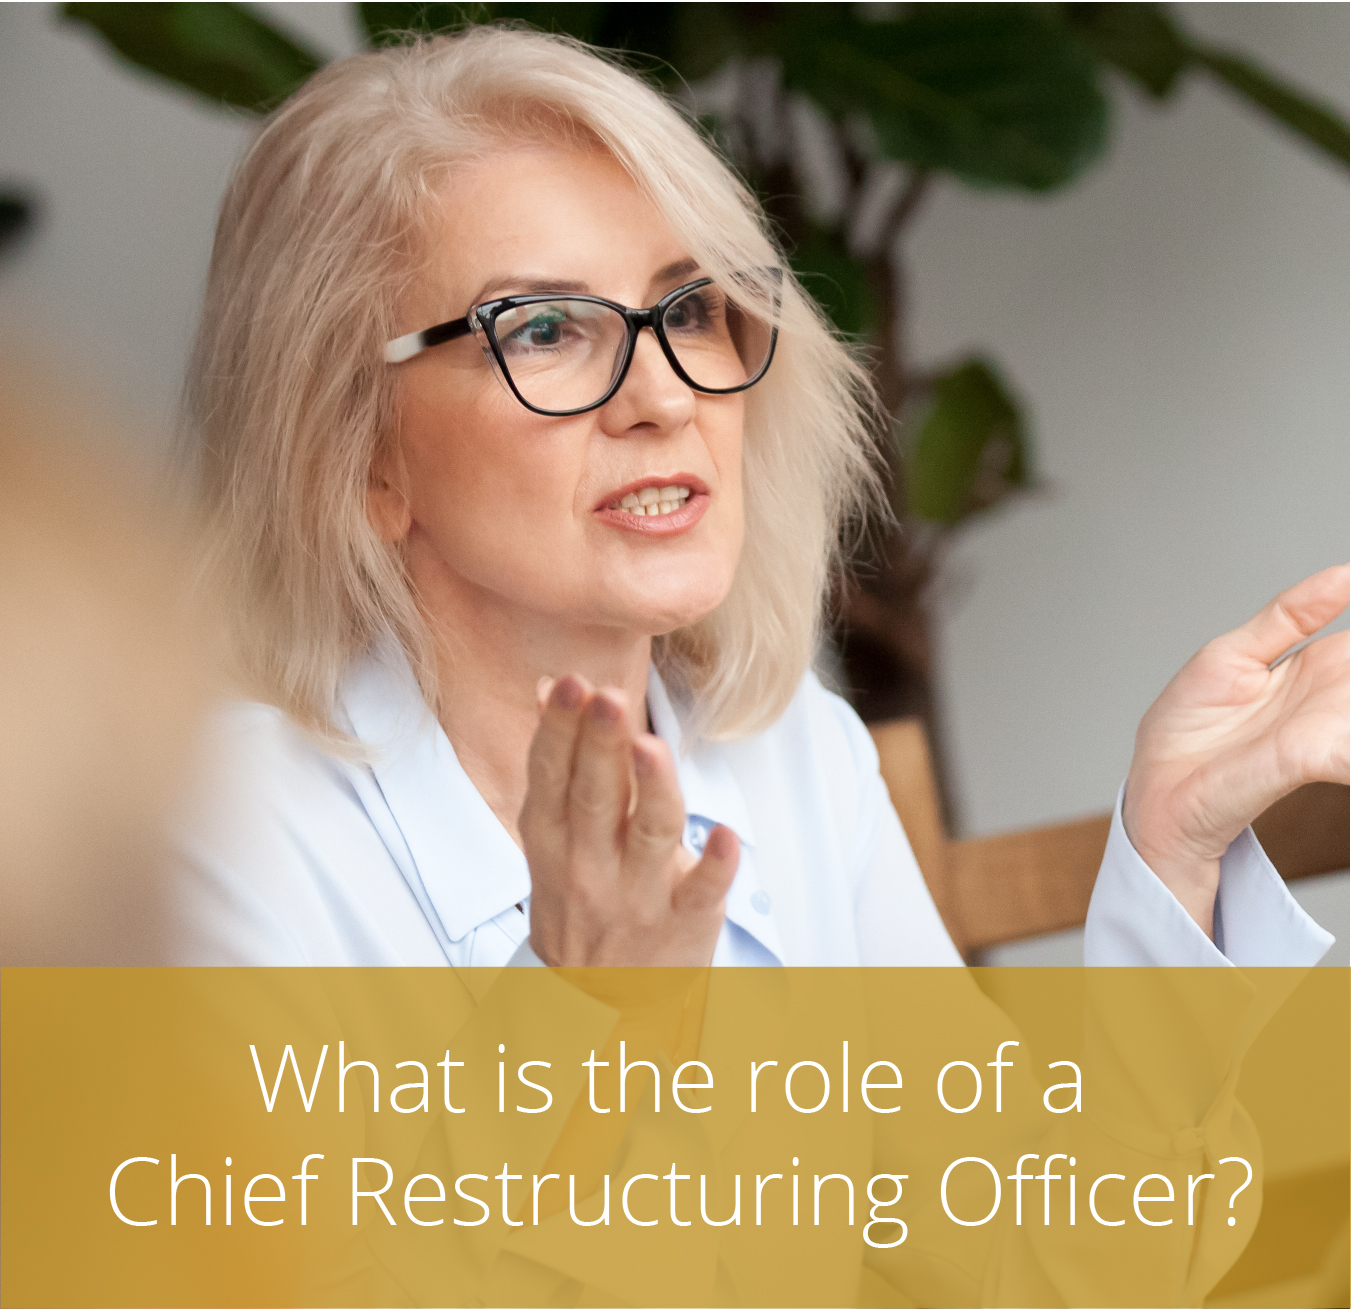 Thumbnail for What is the role of a Chief Restructuring Officer?